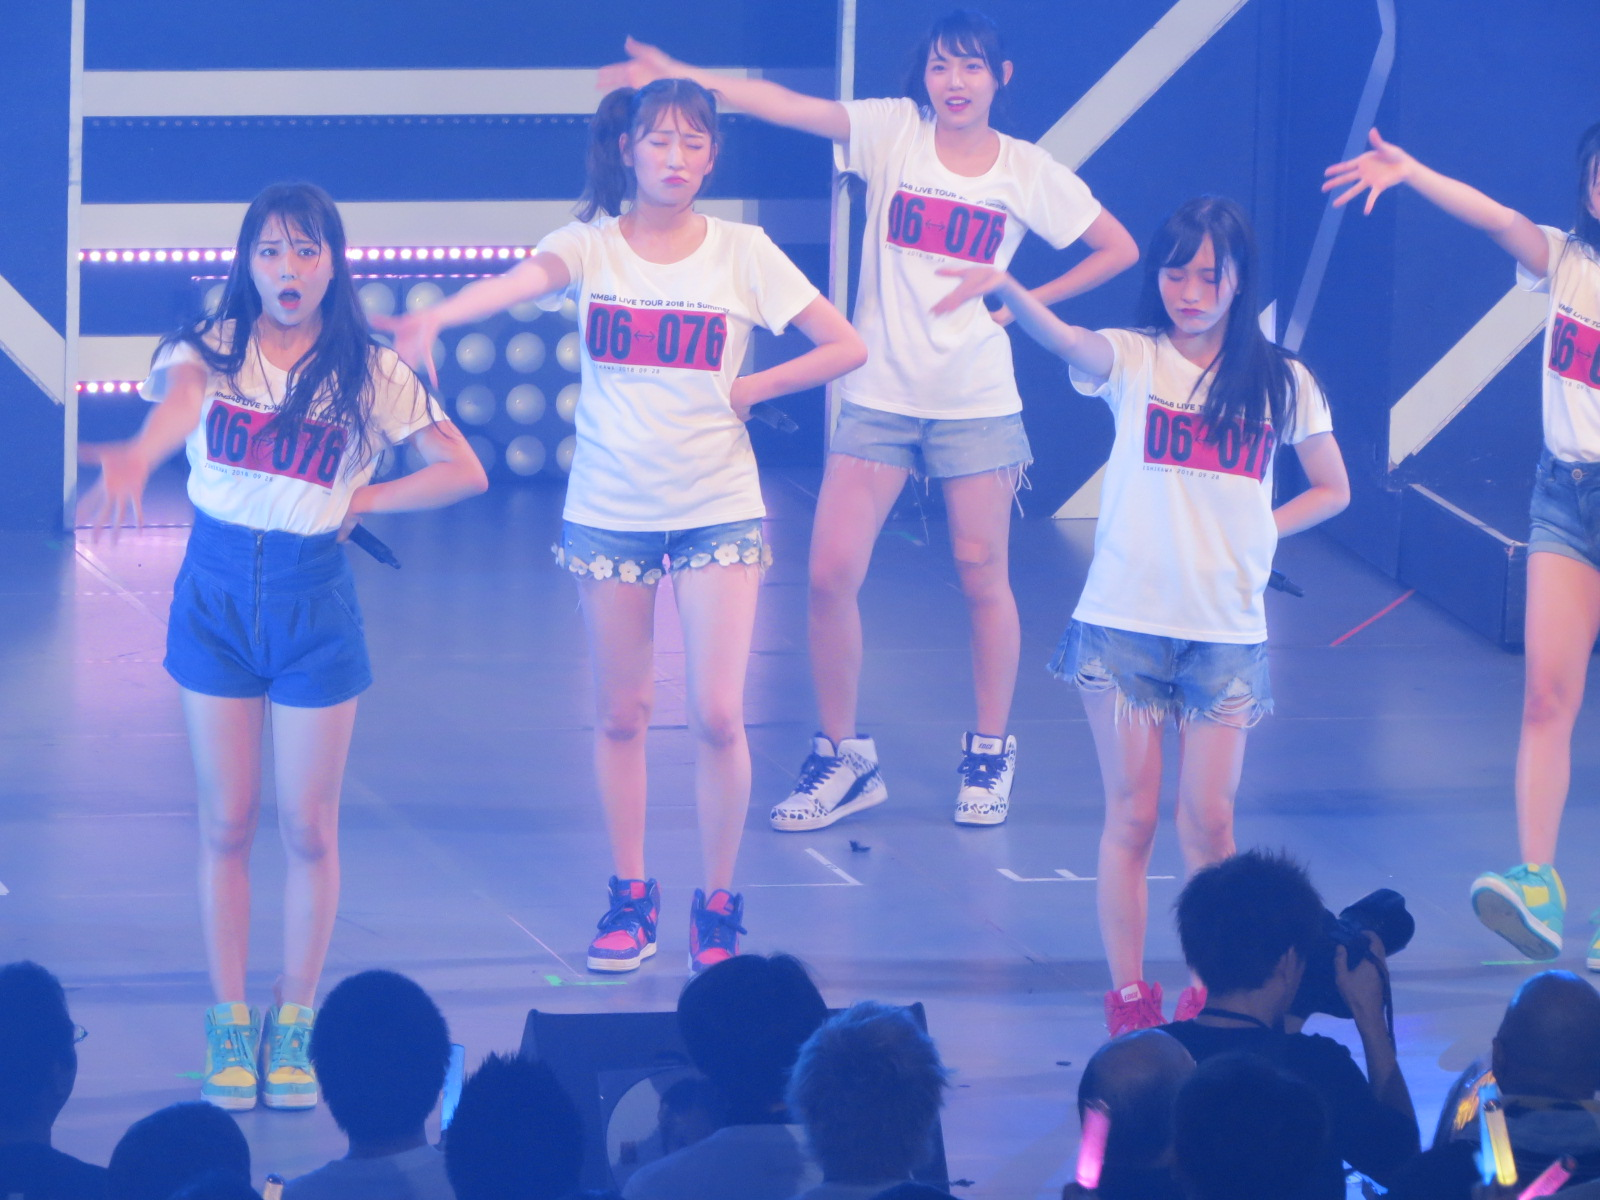 NMB48 LIVE TOUR 2018 in Summer・石川公演の画像-125